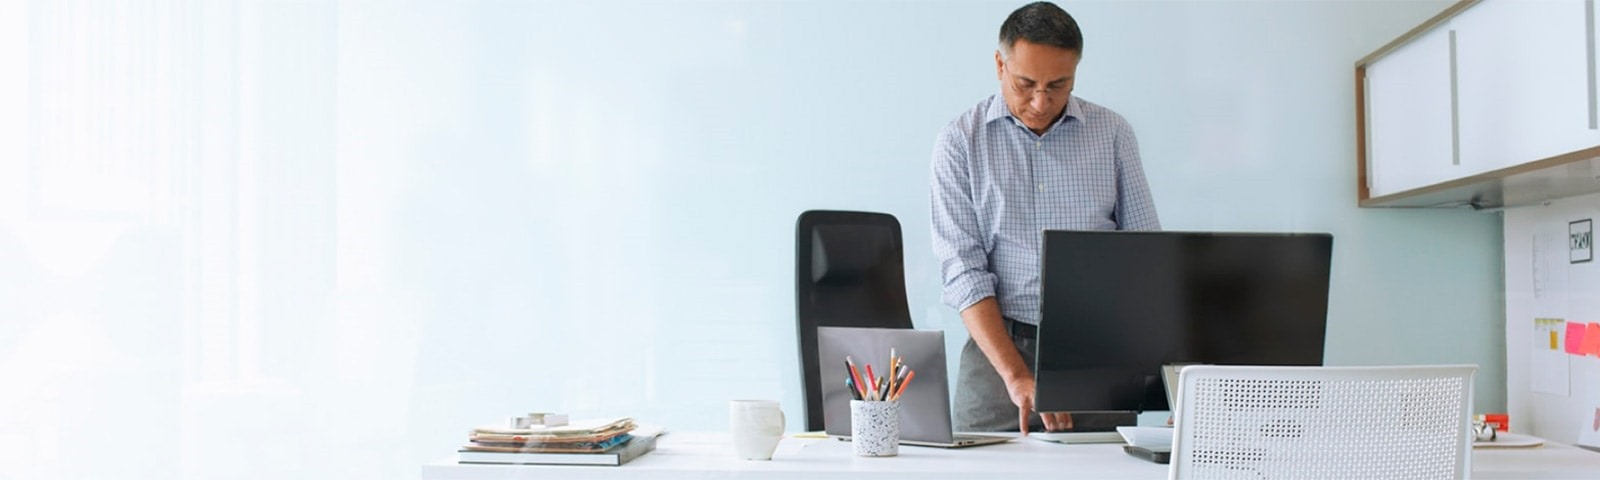 Man standing while working on computer at desk